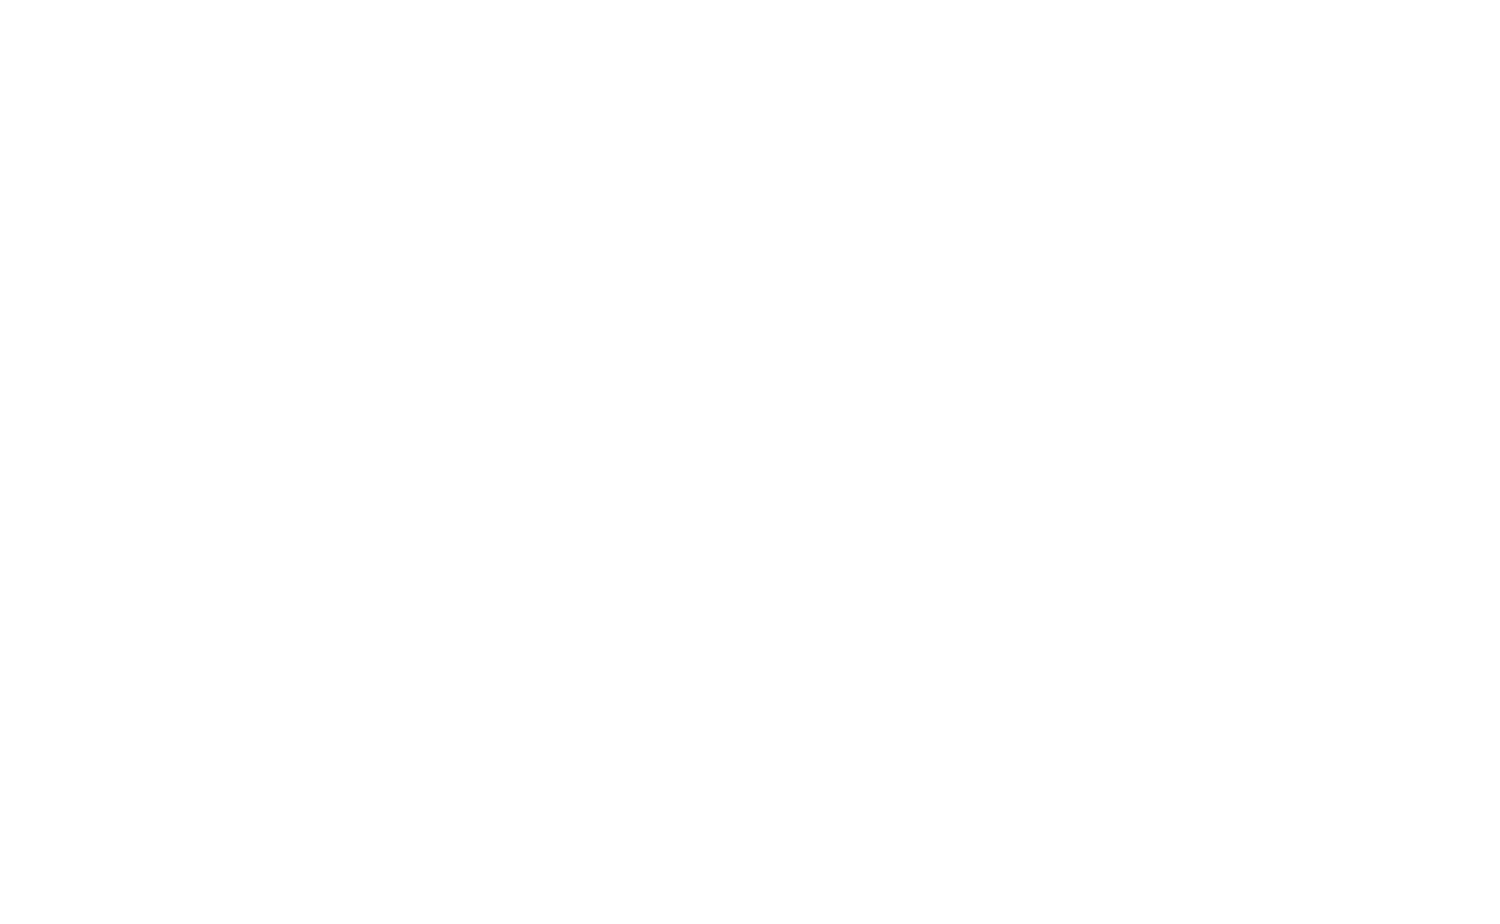 Seismic Weddings